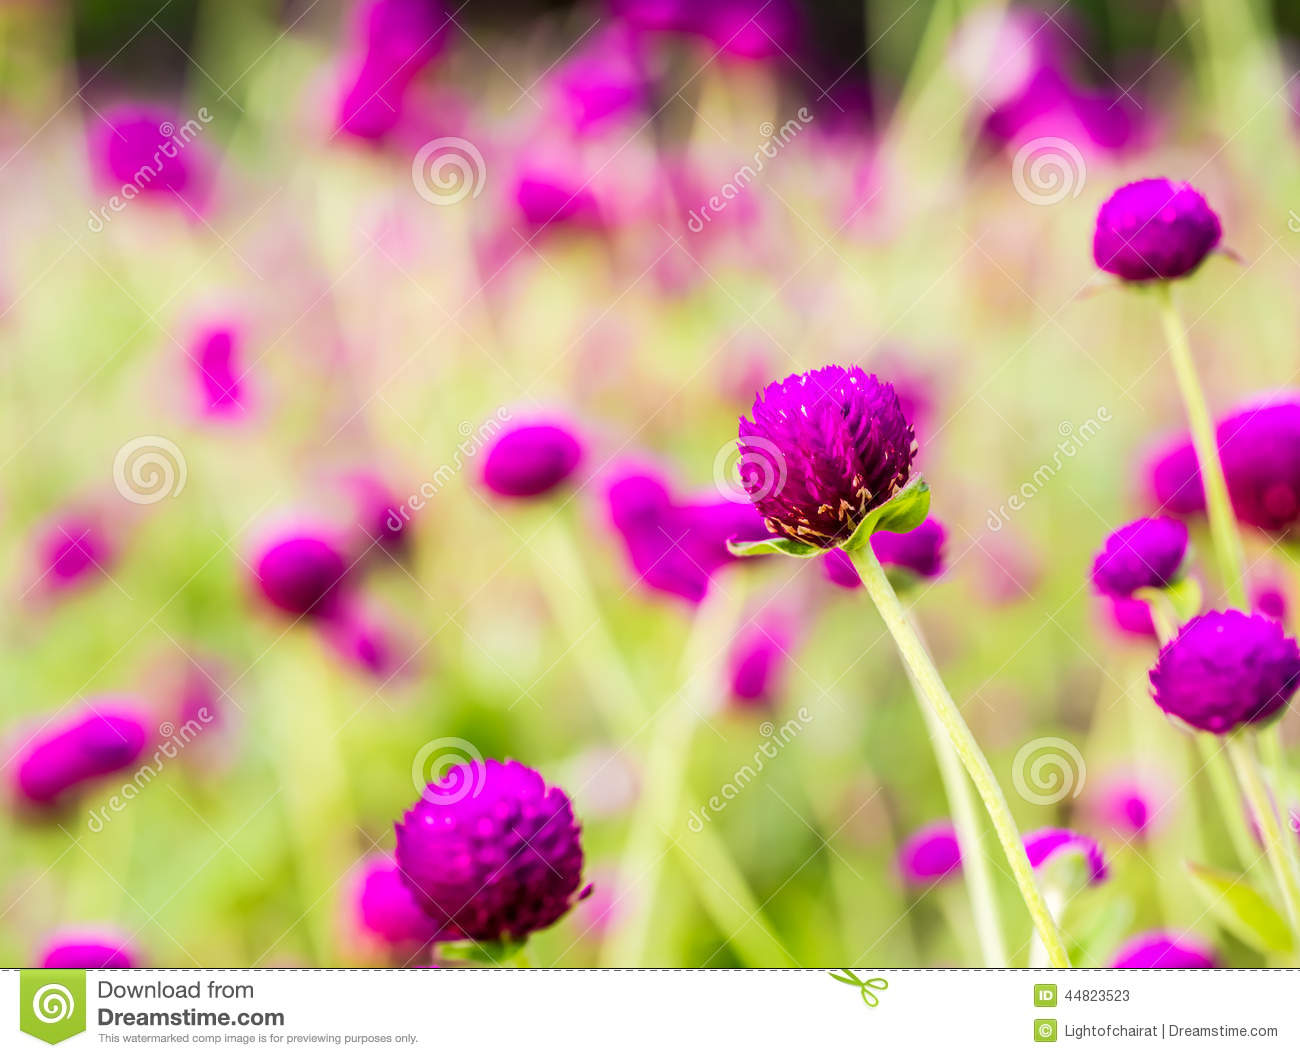 Bachelor Button Flower Stock Image Image Of Beauty Green 44823523